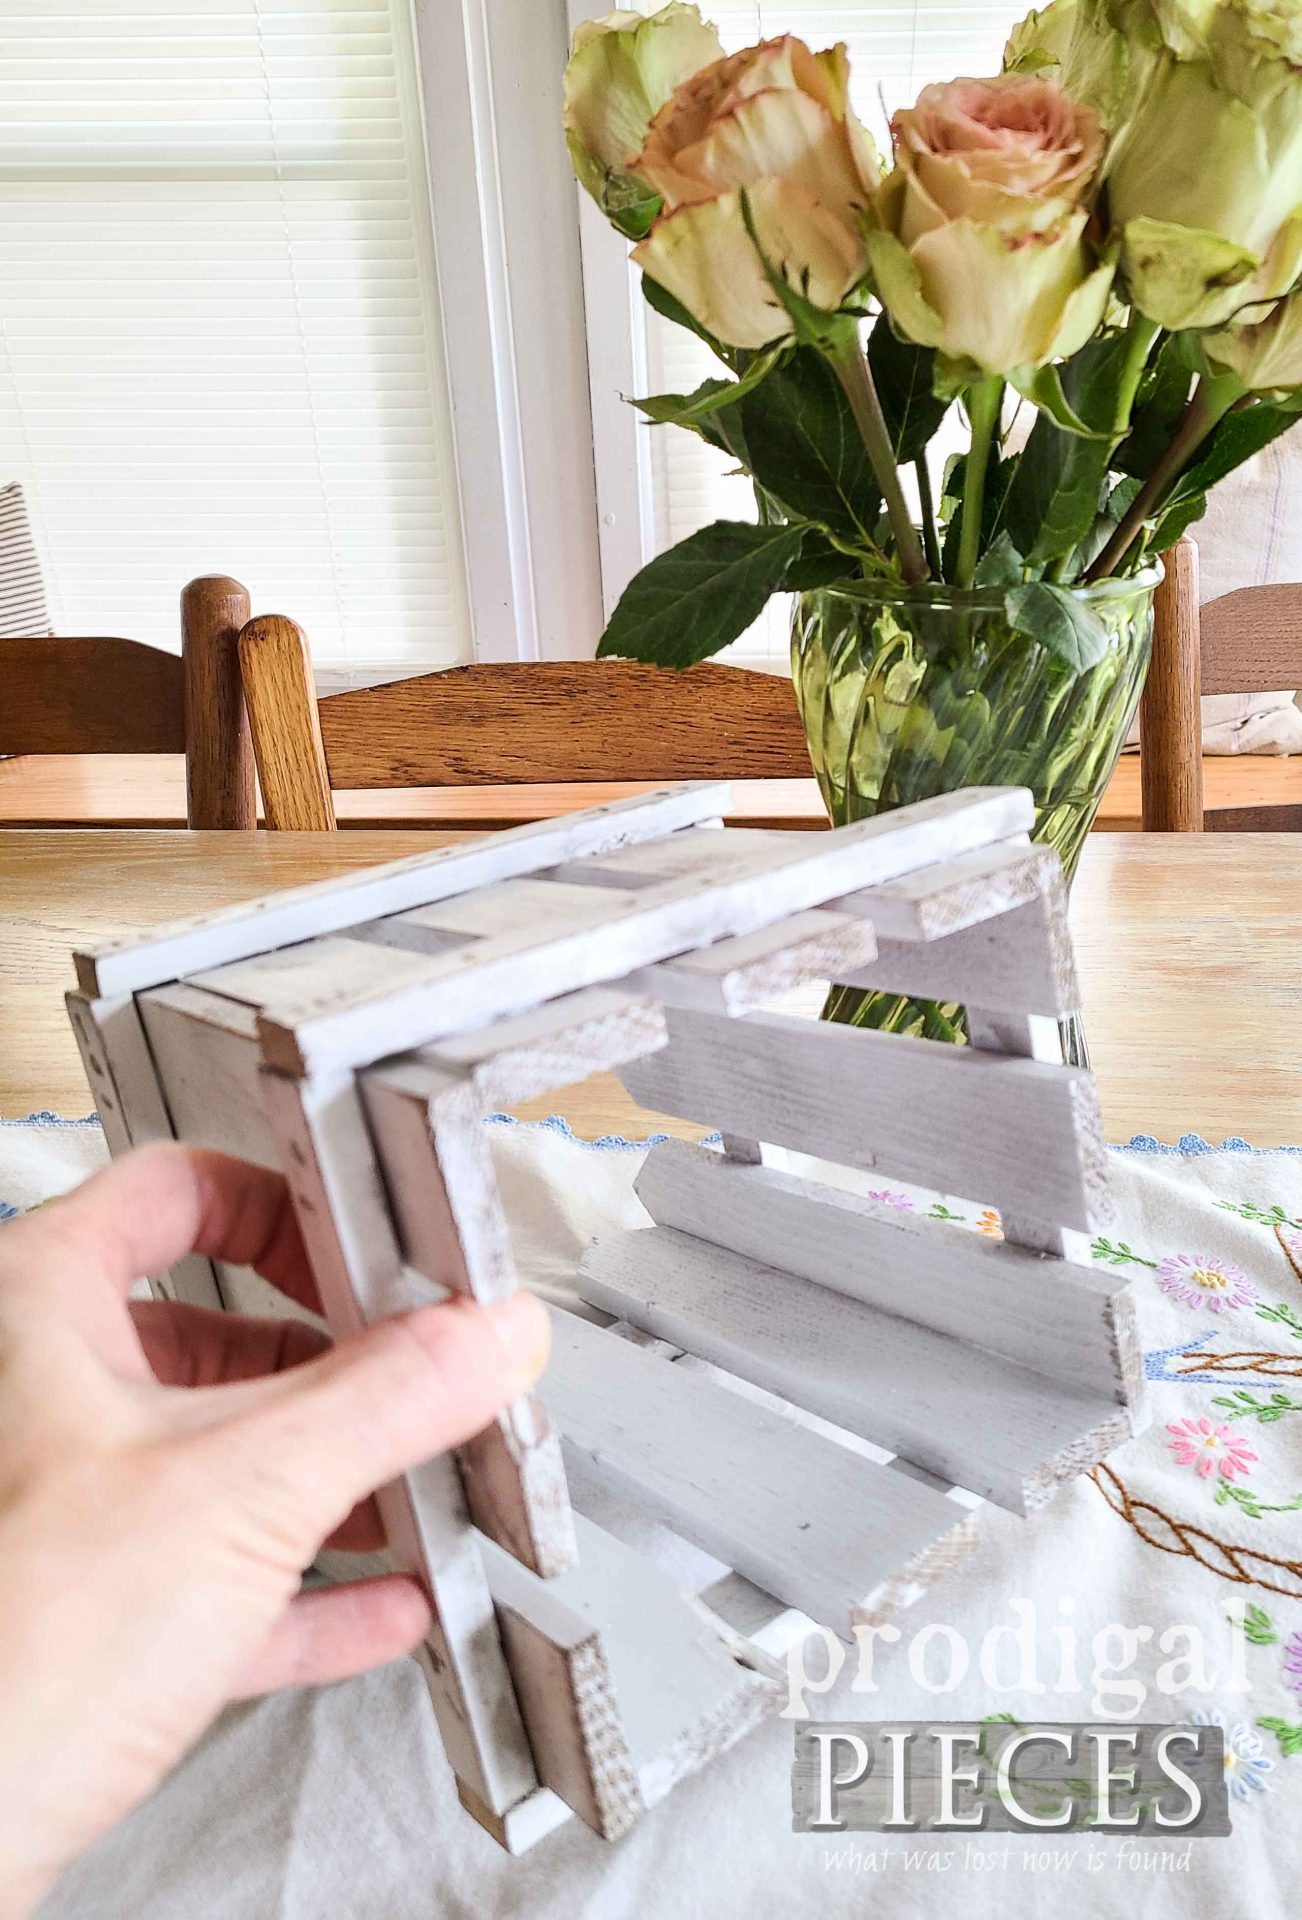 Bottom of White Picket Fence Holder from Upcycled Vintage Shelf by Larissa of Prodigal Pieces | prodigalpieces.com #prodigalpieces #diy #vintage #handmade #home #homedecor